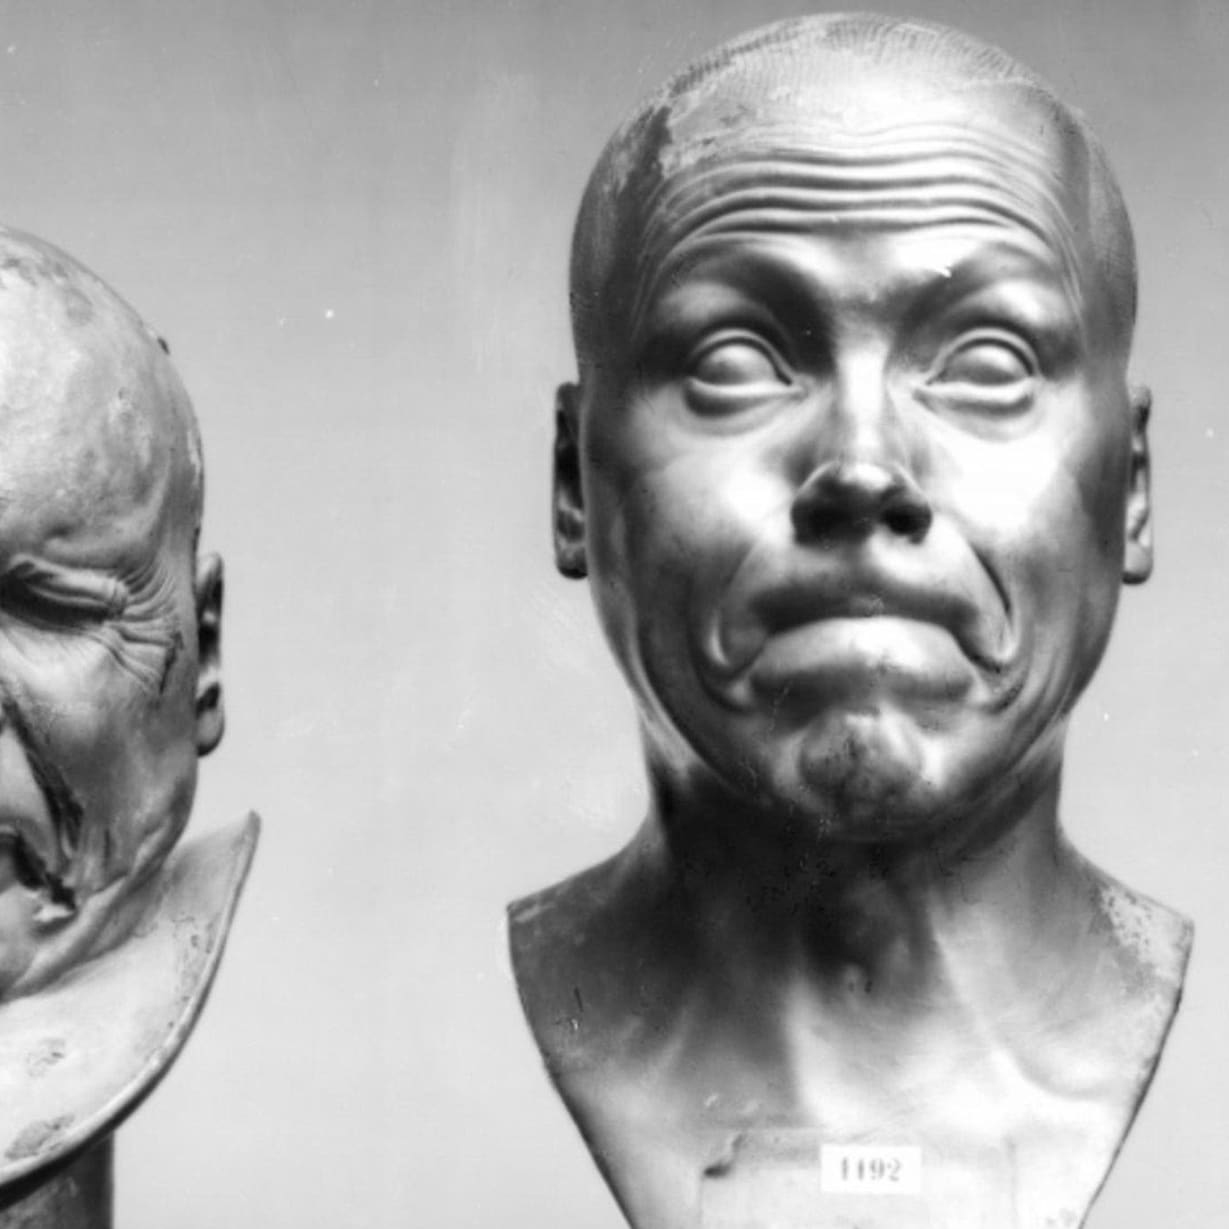 Two metal busts of a man pulling funny faces.